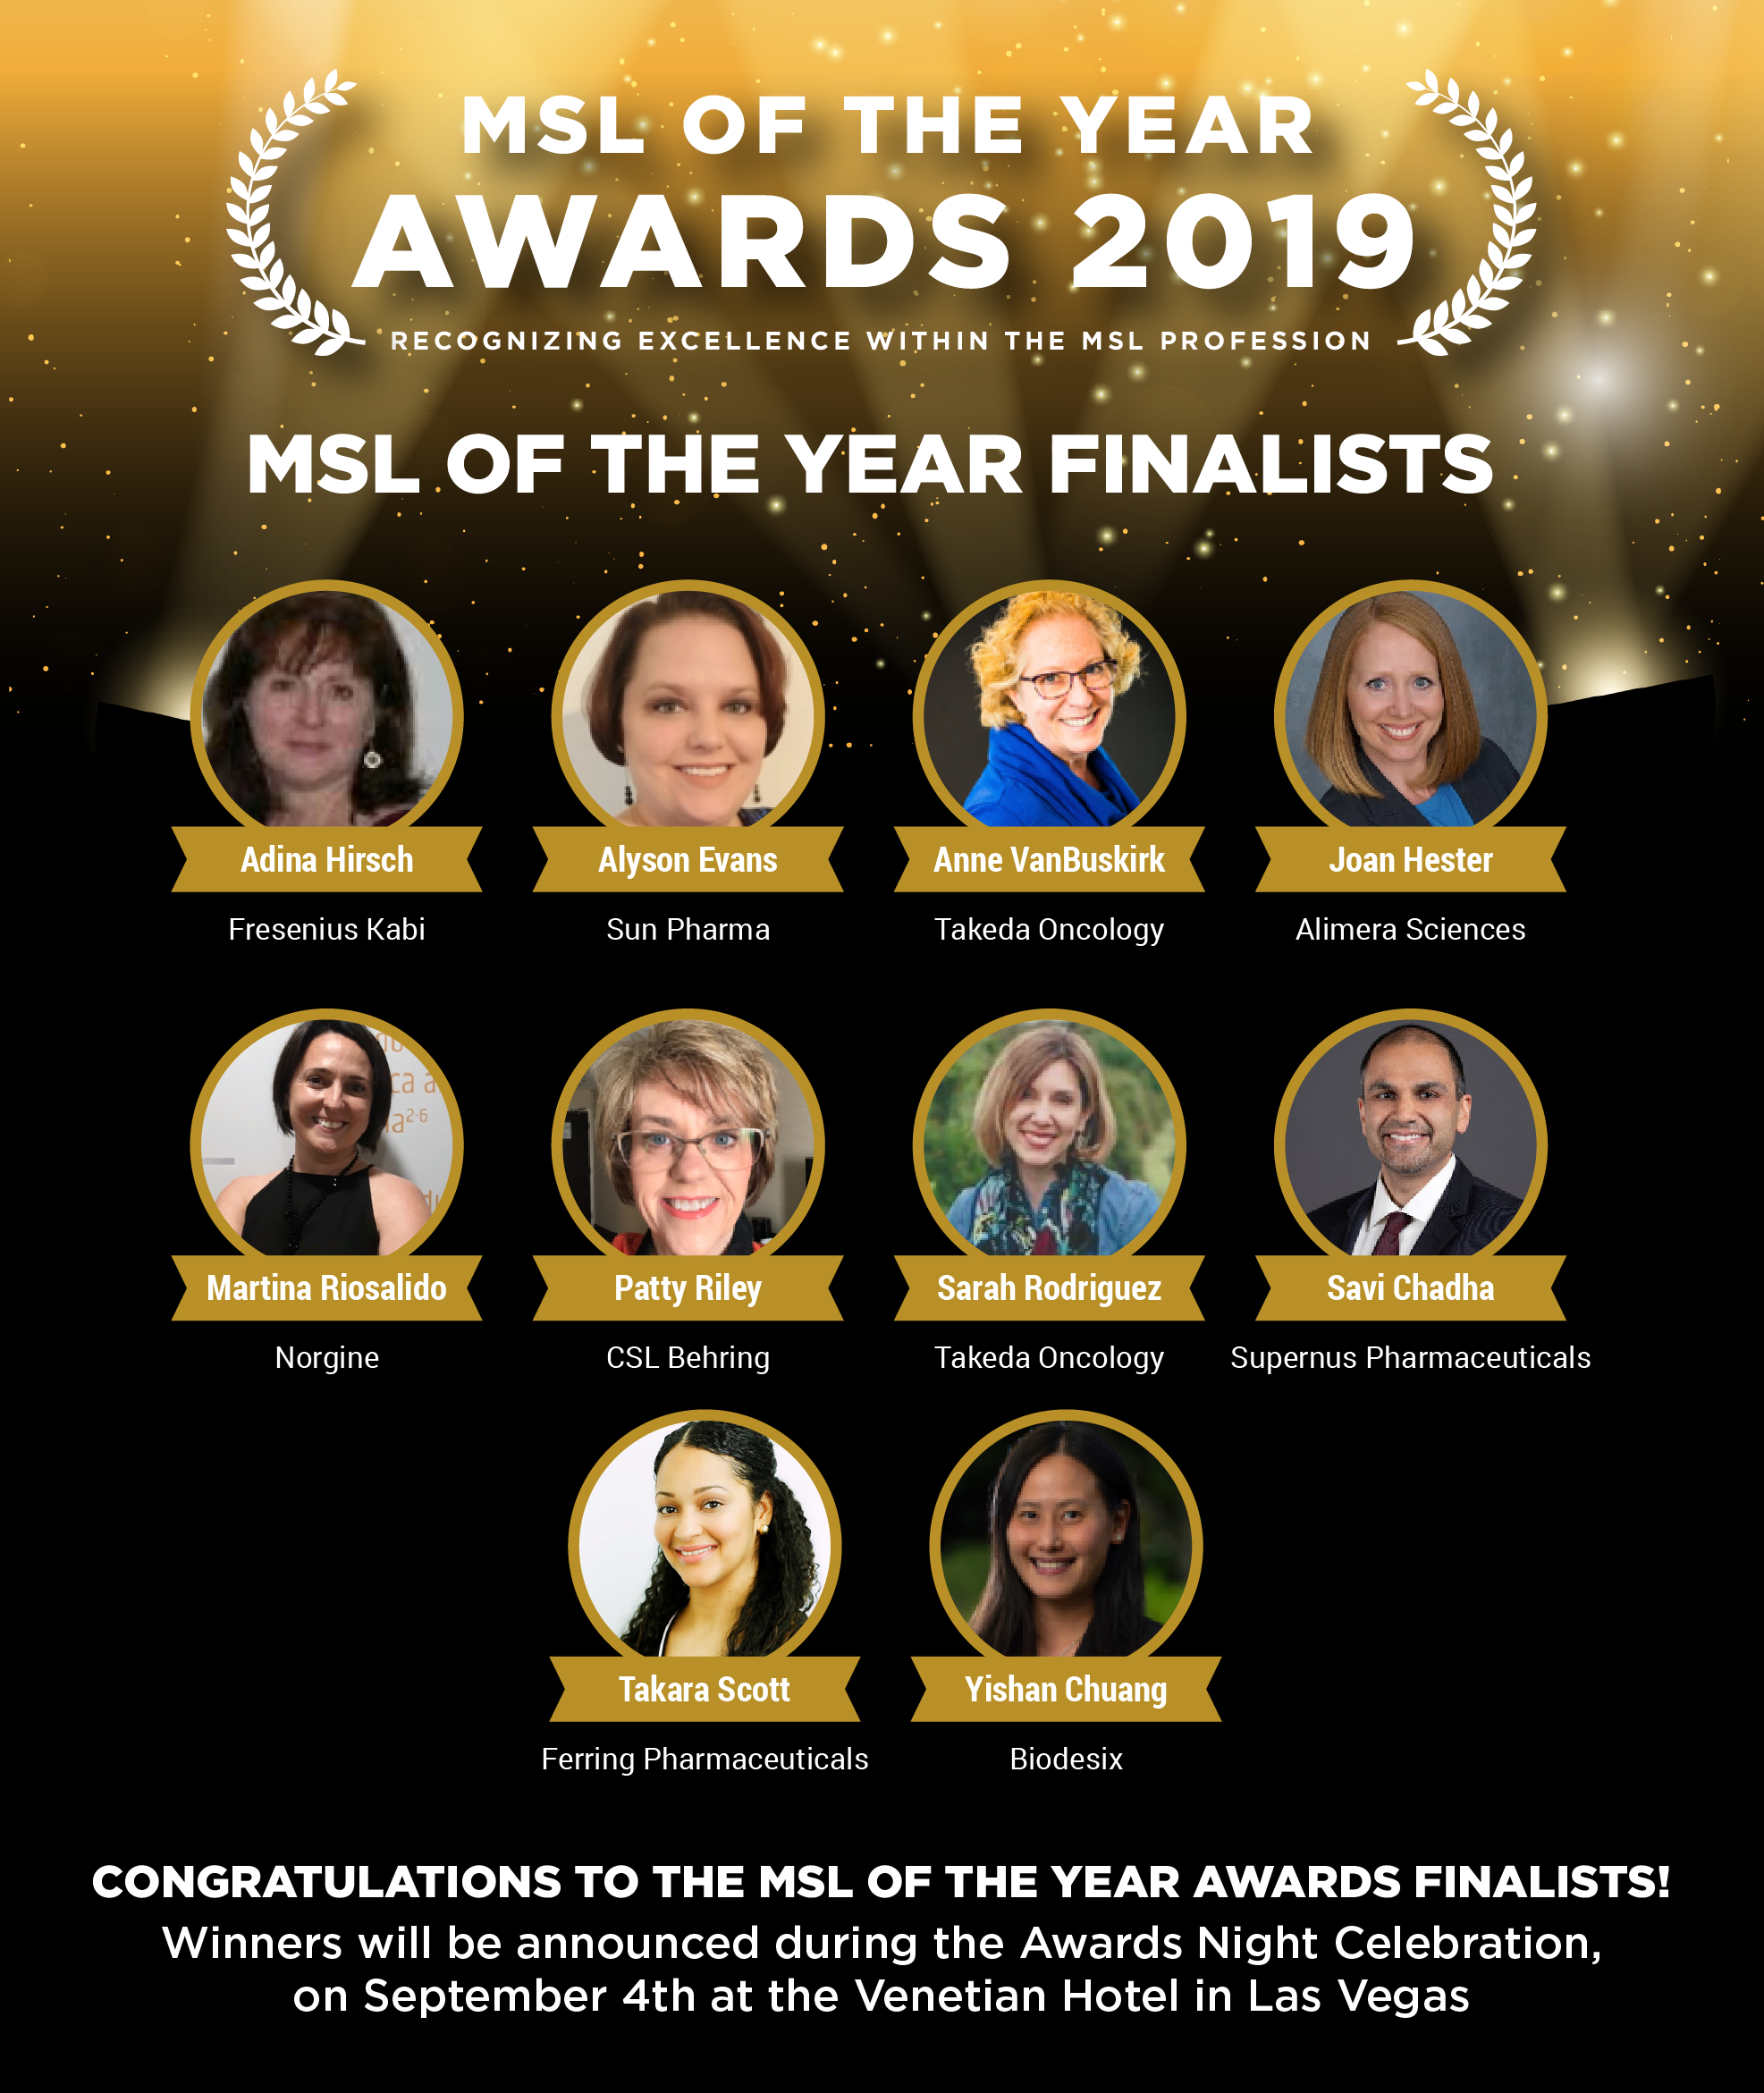 msl of the year awards 2019